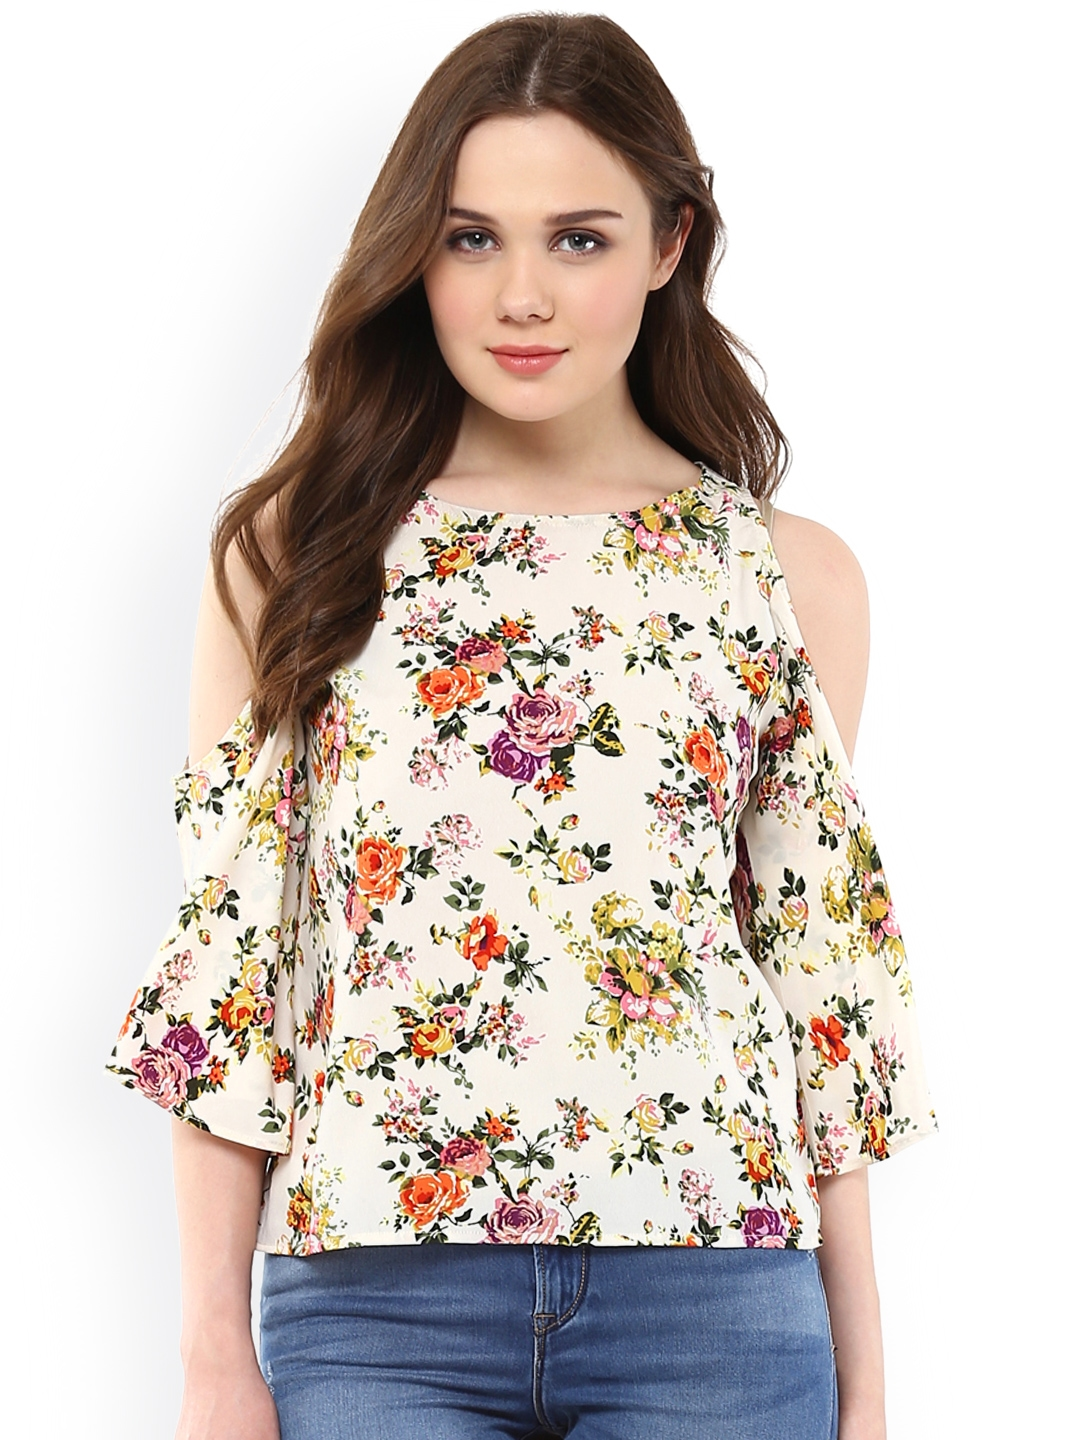 If you are looking to buy tops for women, shopping for them online is one of the best, convenient and easiest ways to get access to a wider variety, as well as the option to choose from among different brands, types and tops designs. You can also compare between different women top prices.